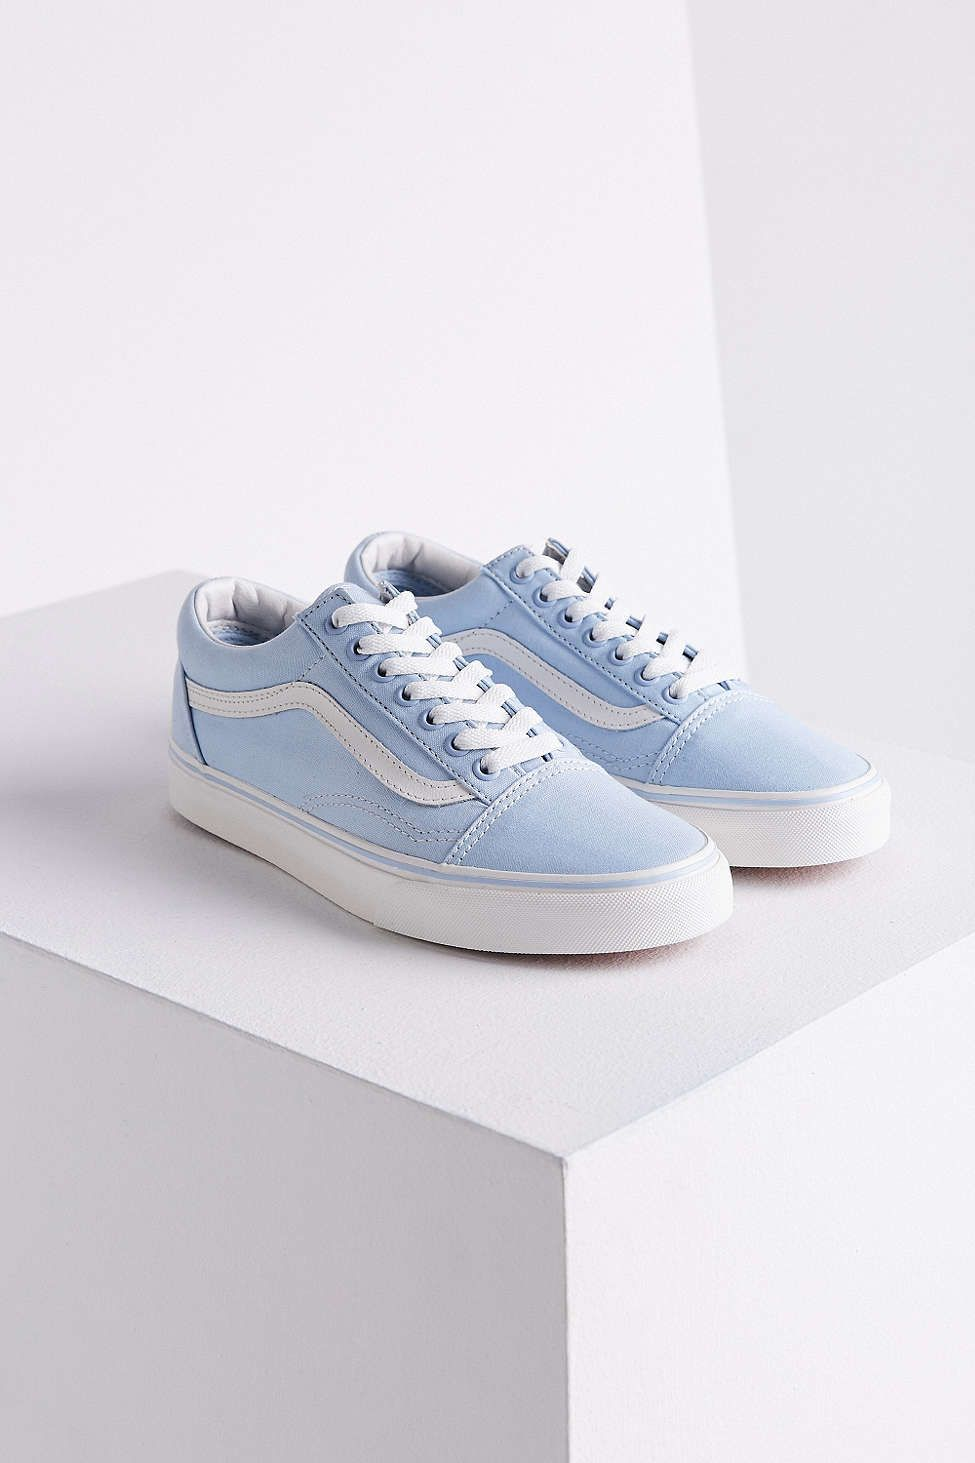 9f35865a67 UrbanOutfitters.com  Awesome stuff for you   your space. Tendance  Chausseurs Femme 2017 Vans ...